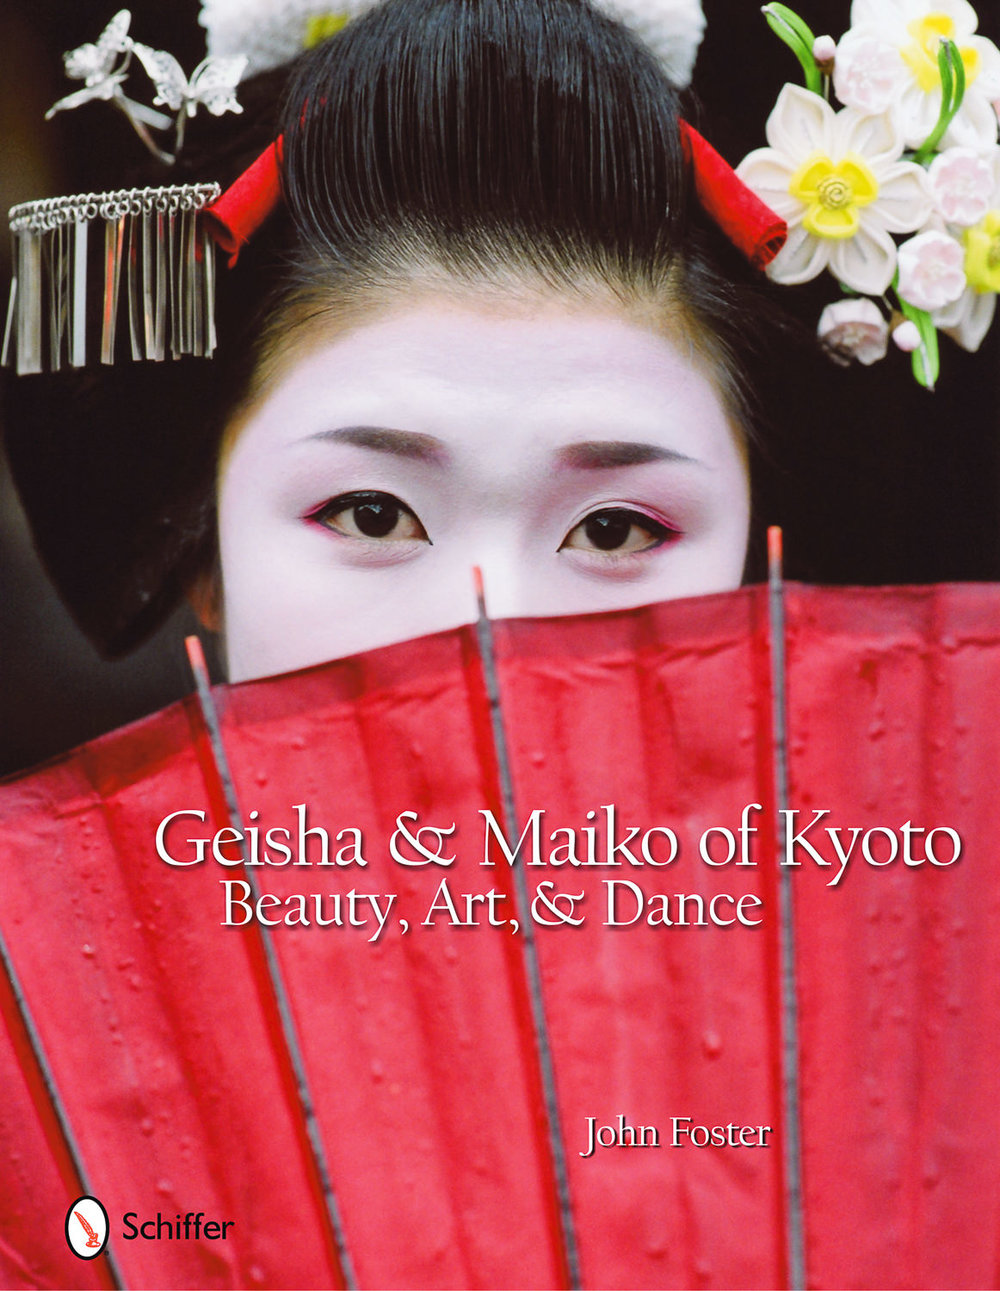 Geisha and Maiko of Kyoto